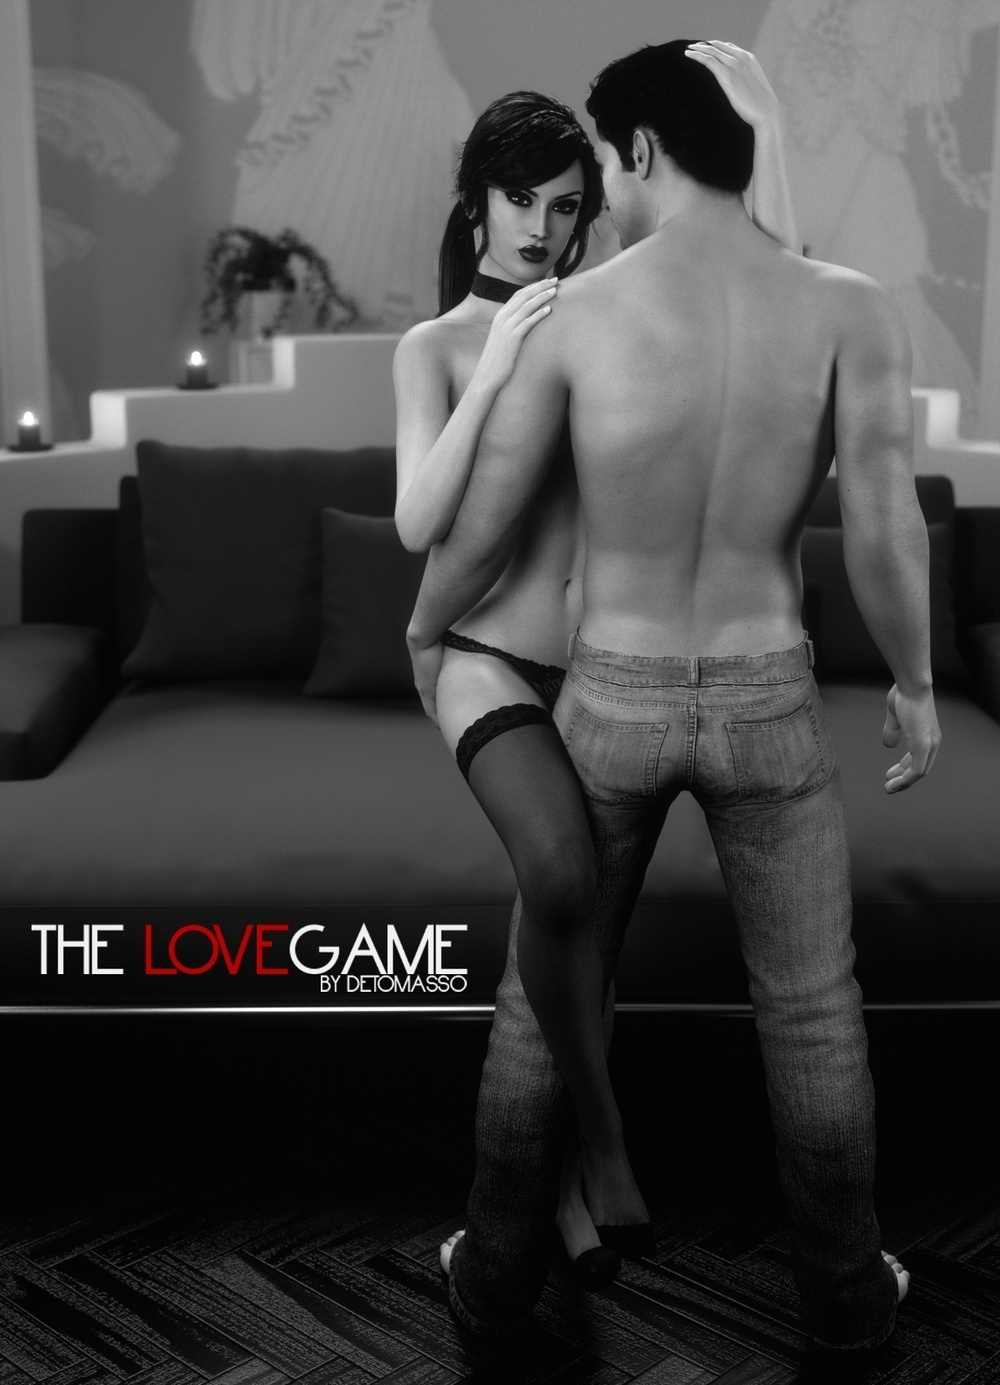 LOVE GAME – 1 FROM DETOMASSO